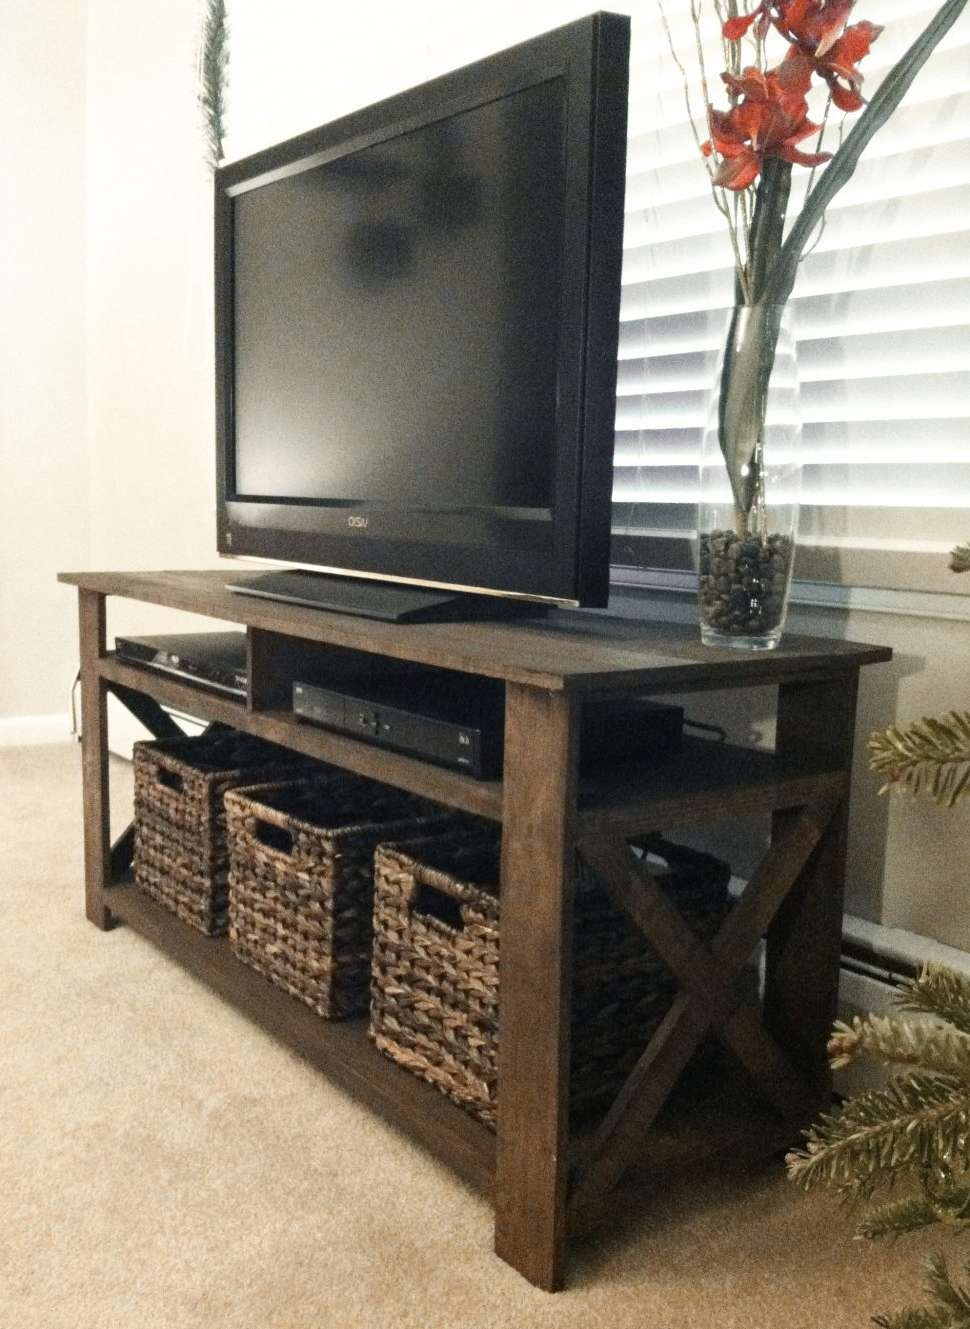 Tv Stand With Baskets With Tv Stands With Baskets (View 10 of 15)